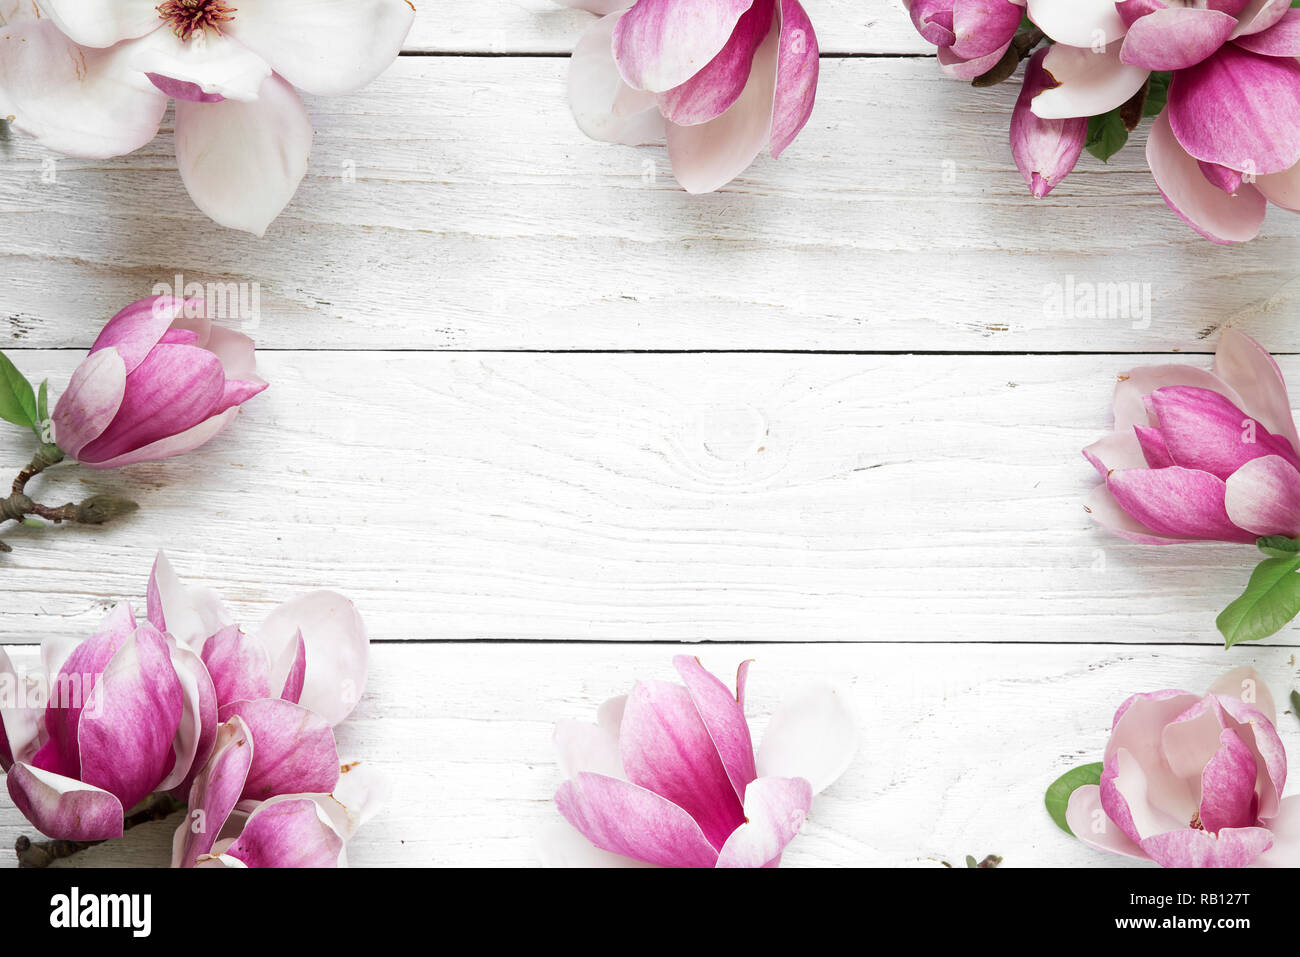 Creative layout made with pink magnolia flowers on white